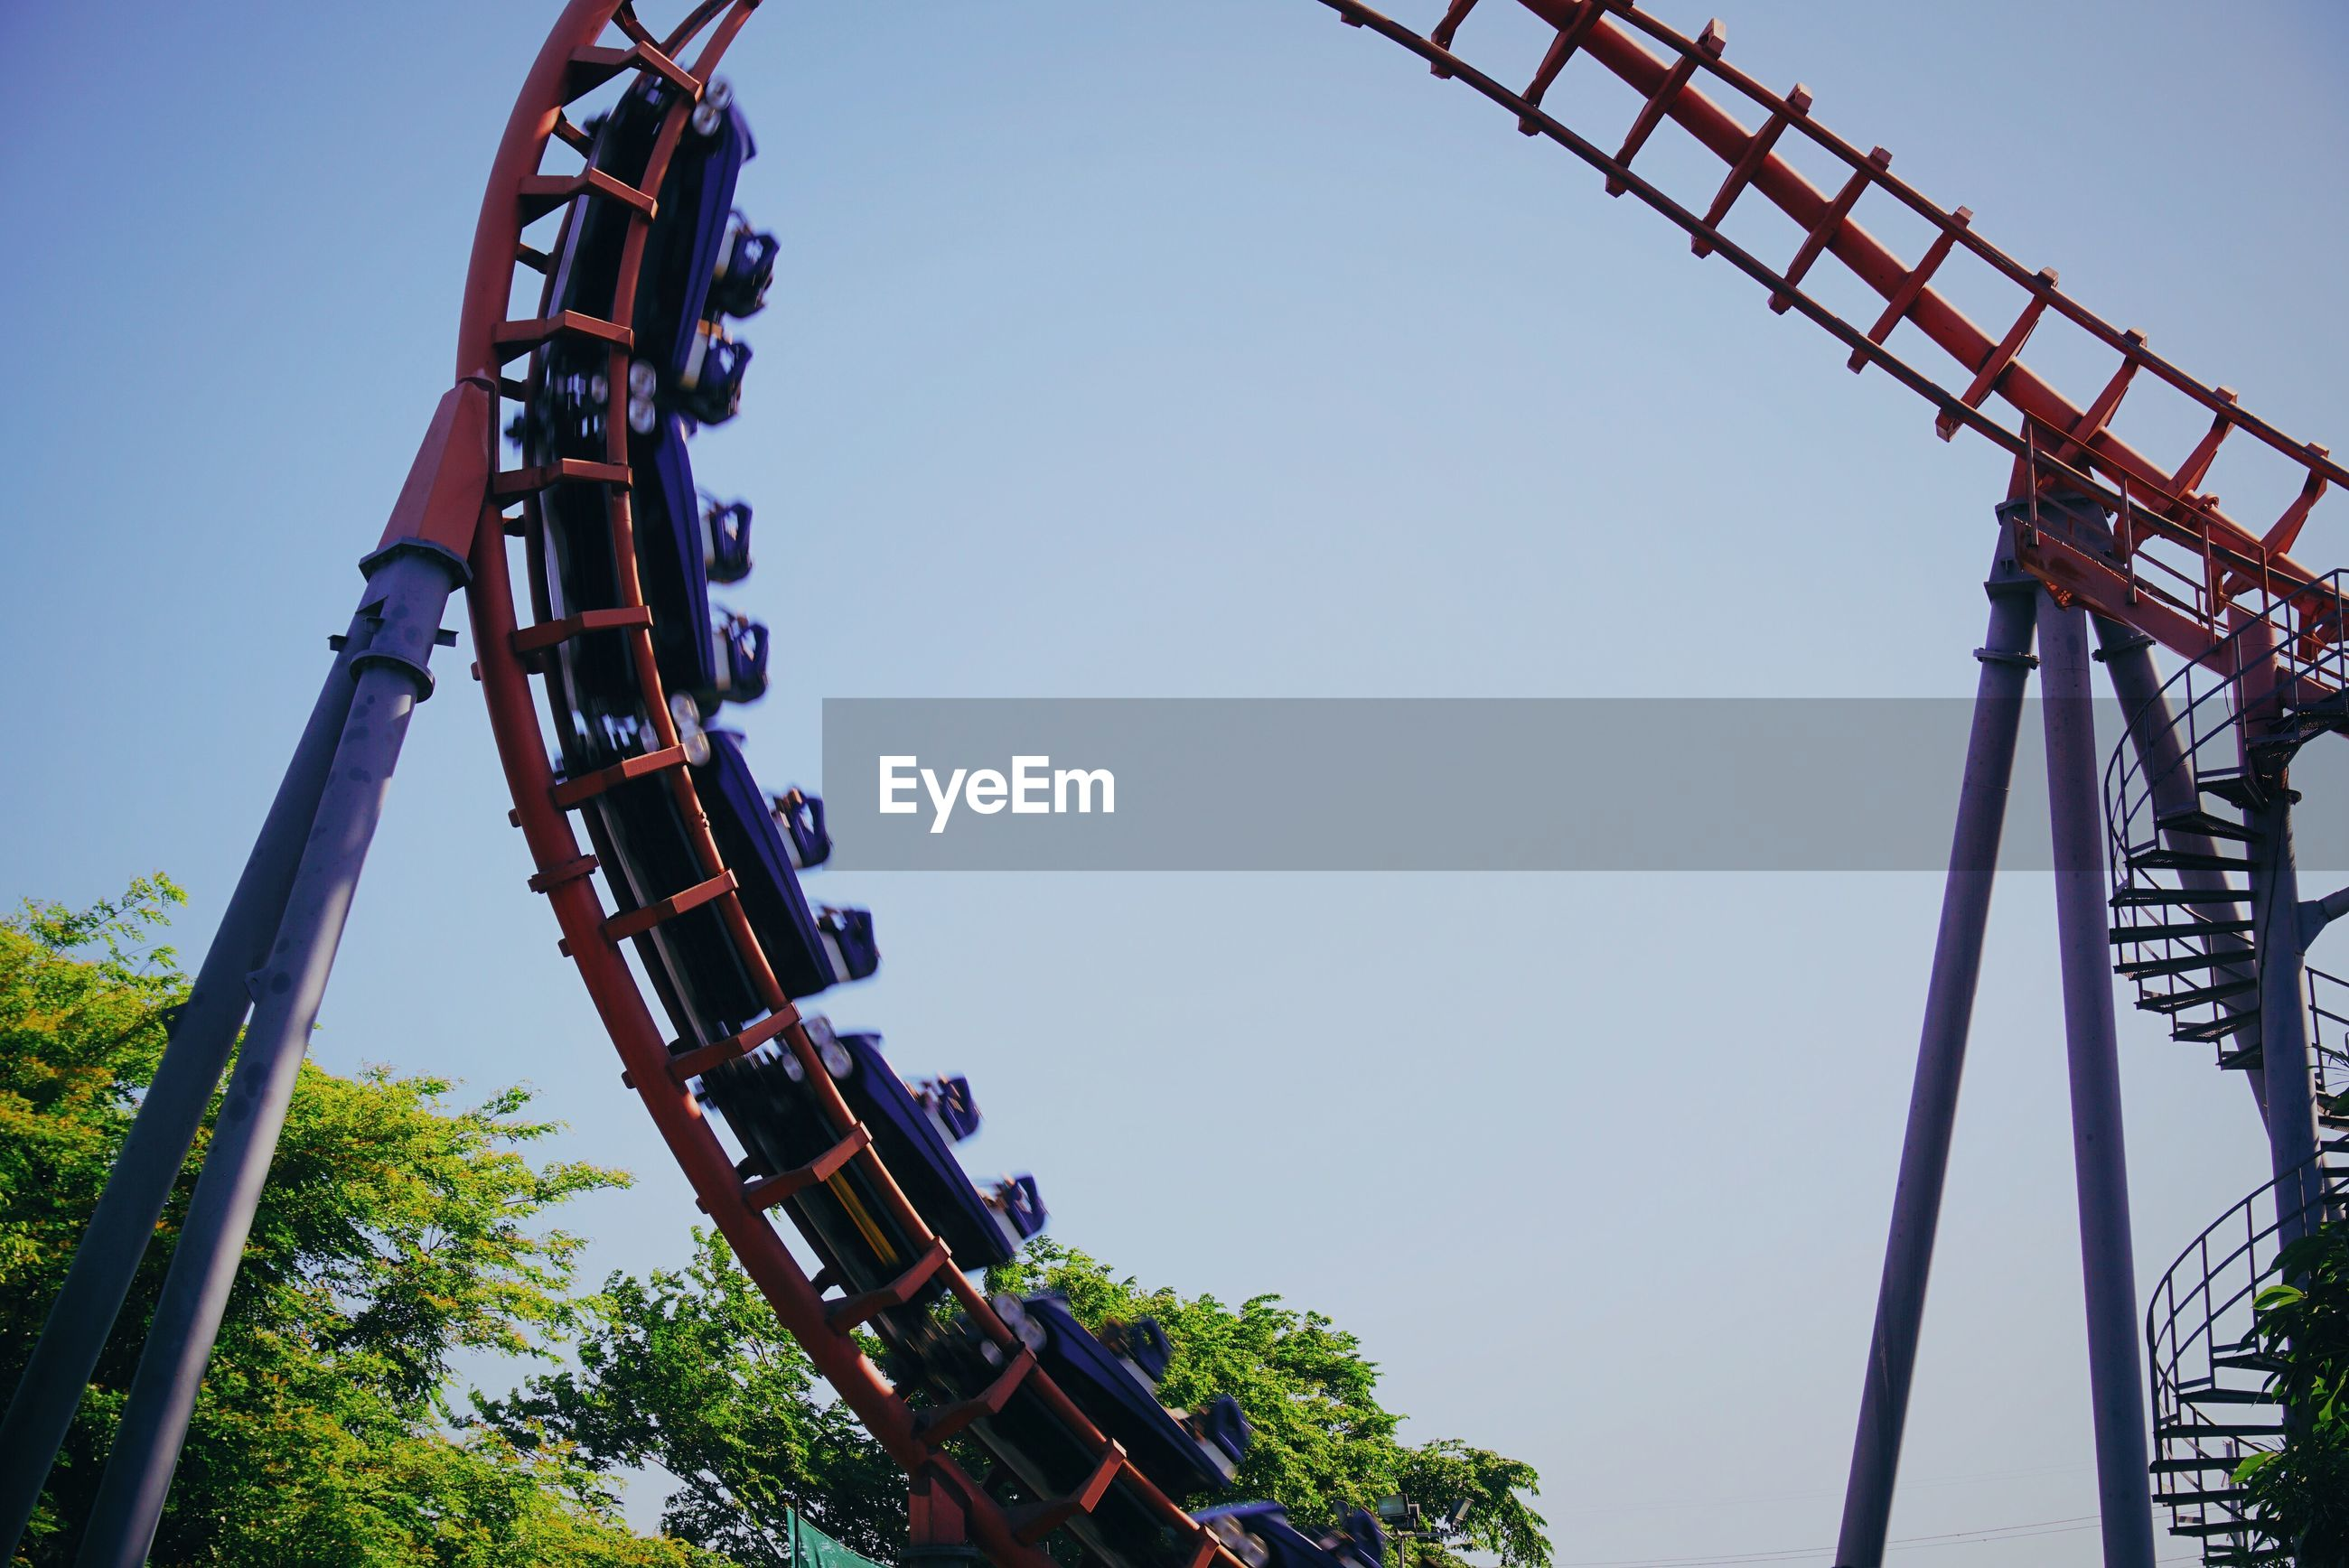 Low angle view of rollercoaster in action